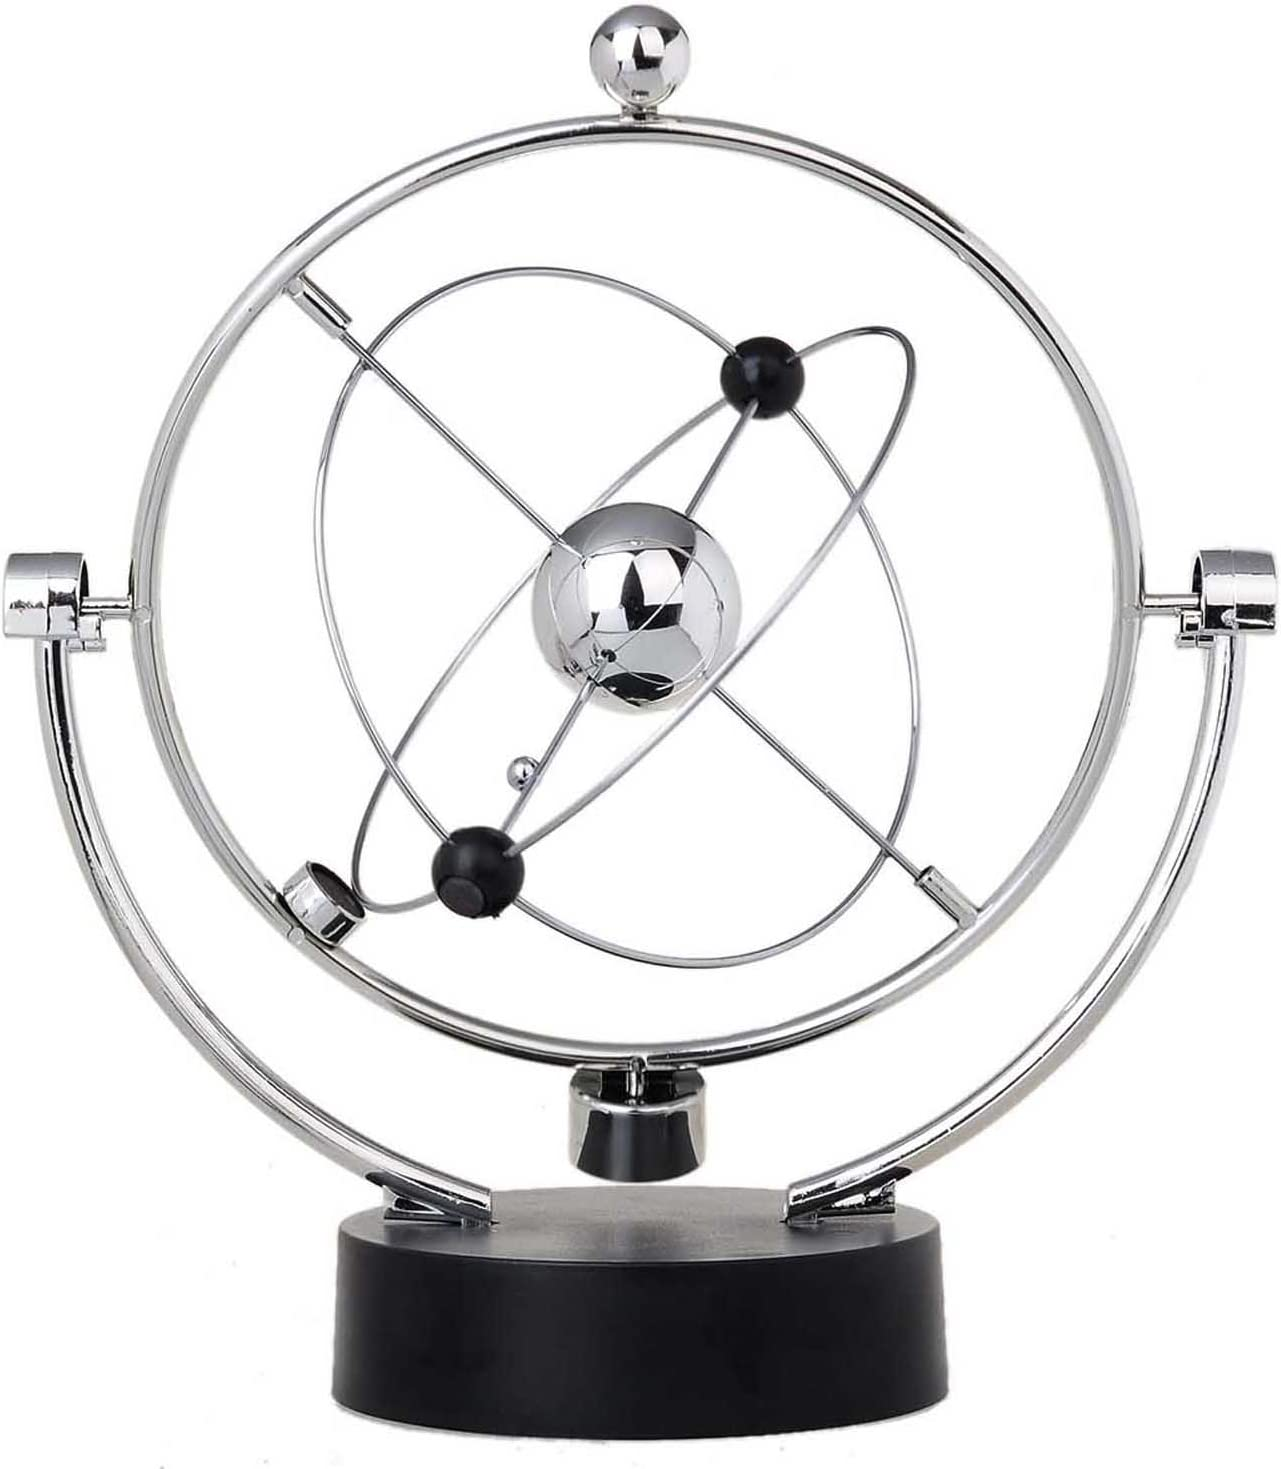 ThinkTop Educational Physics Mechanics Science Toy Kinetic Art Milky Way Orbital Gadget Perpetual Motion Gizmos Home Office Desk Decoration